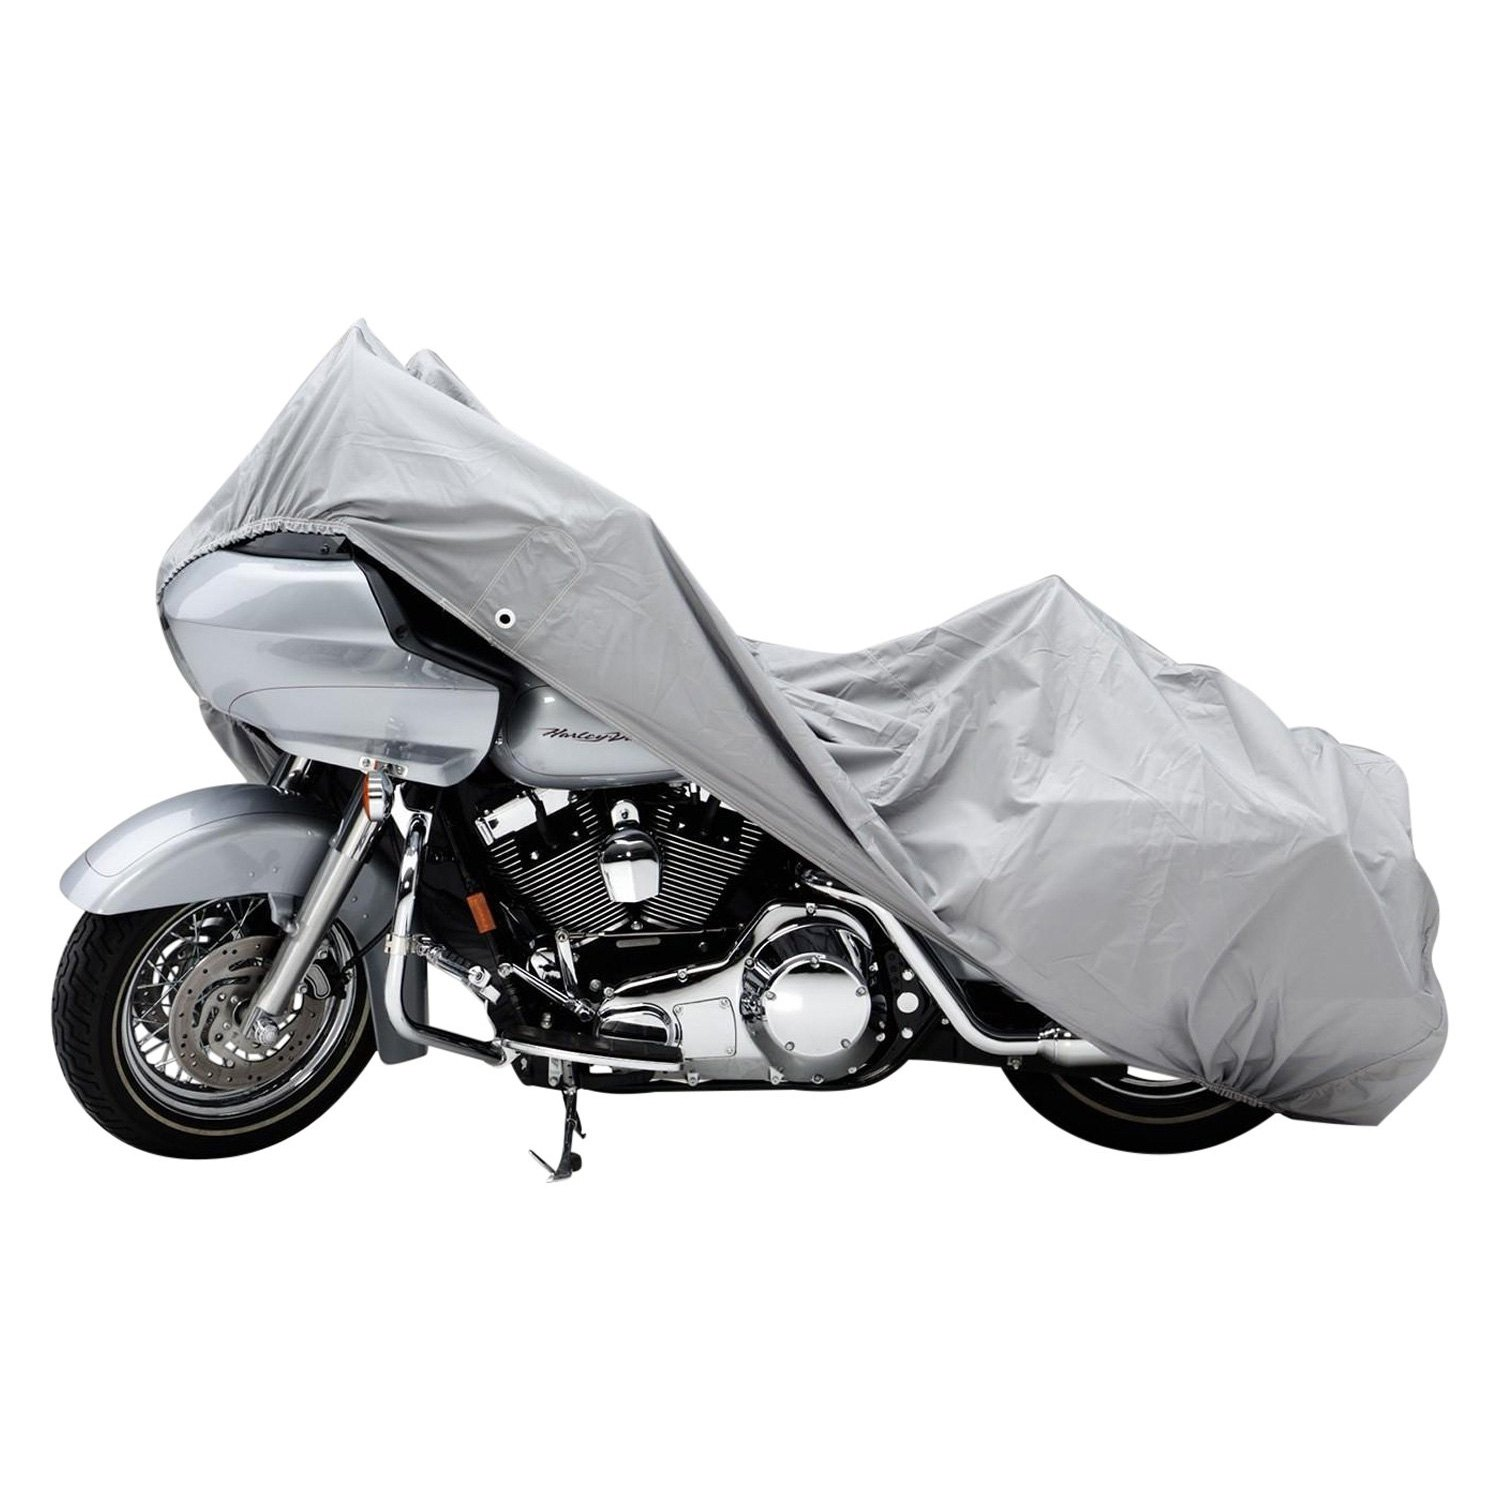 Harley Davidson Covers >> Covercraft Pack Lite Custom Fit Harley Davidson Yellow Motorcycle Cover